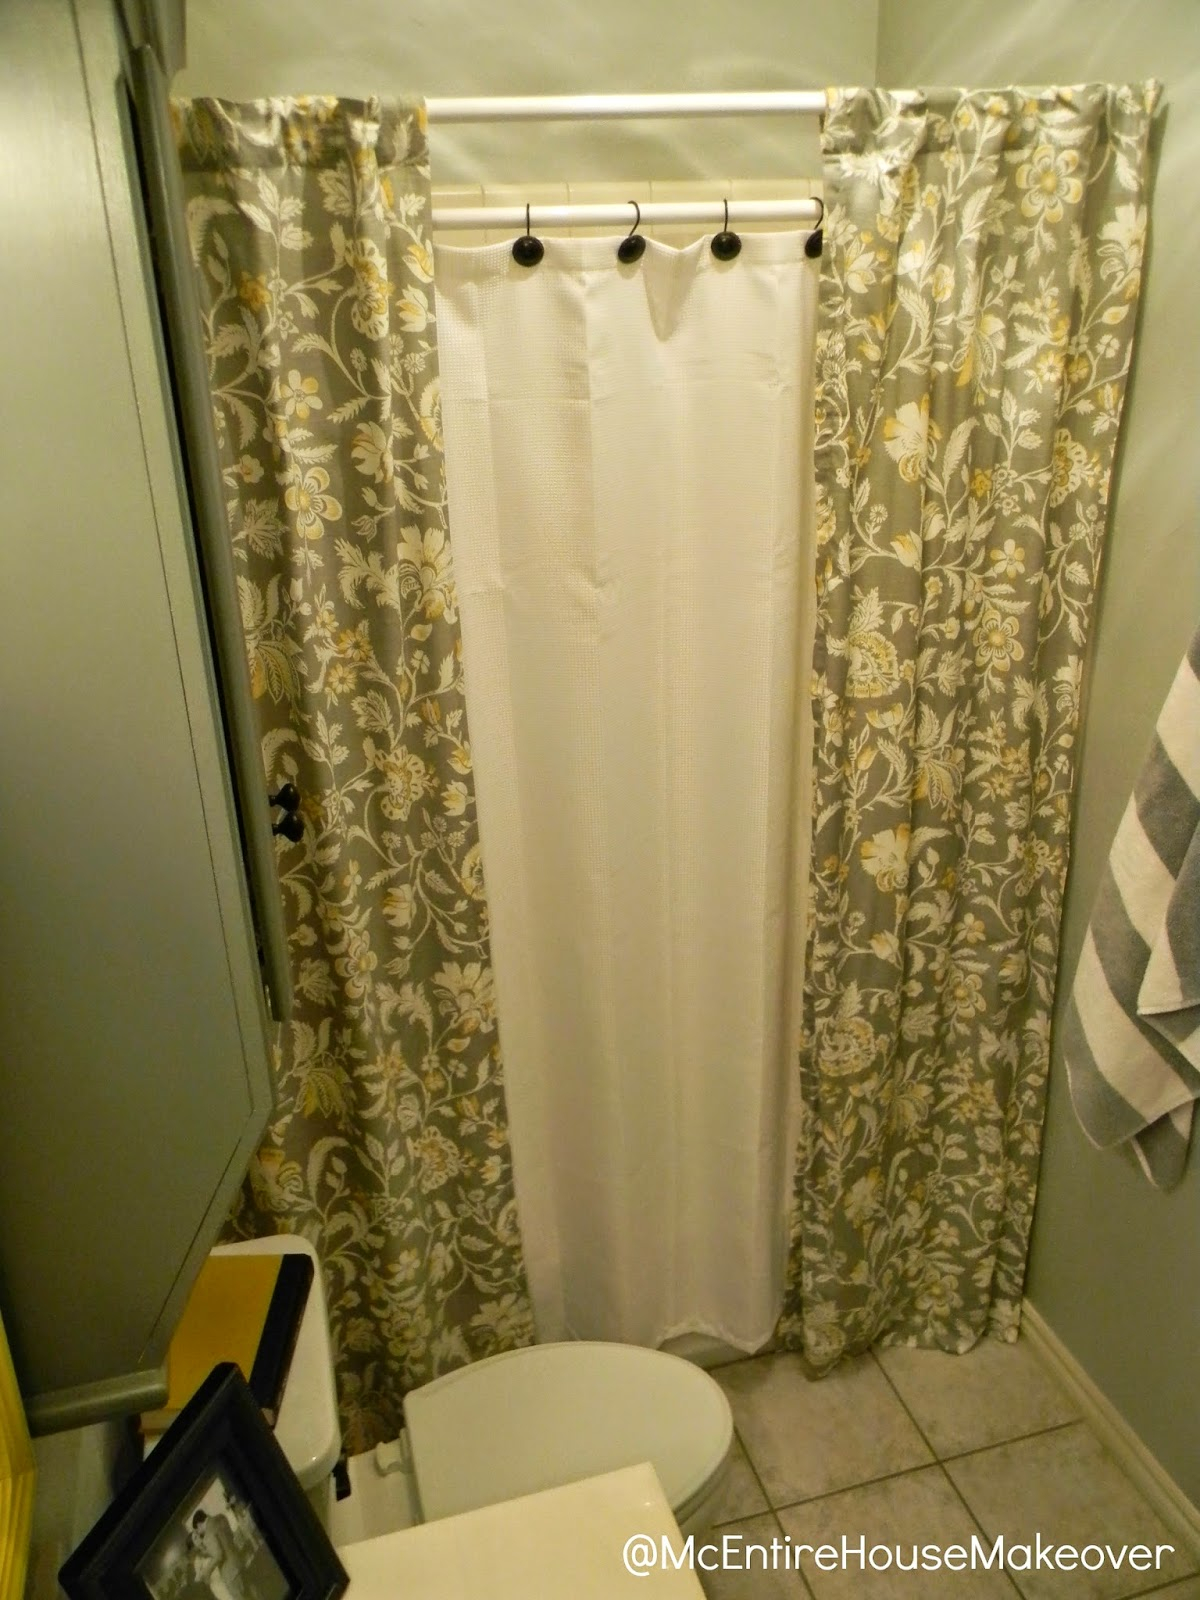 Mcentire House Makeover Making 2 Shower Curtain Panels Out Of 1 Inside Size 1200 X 1600